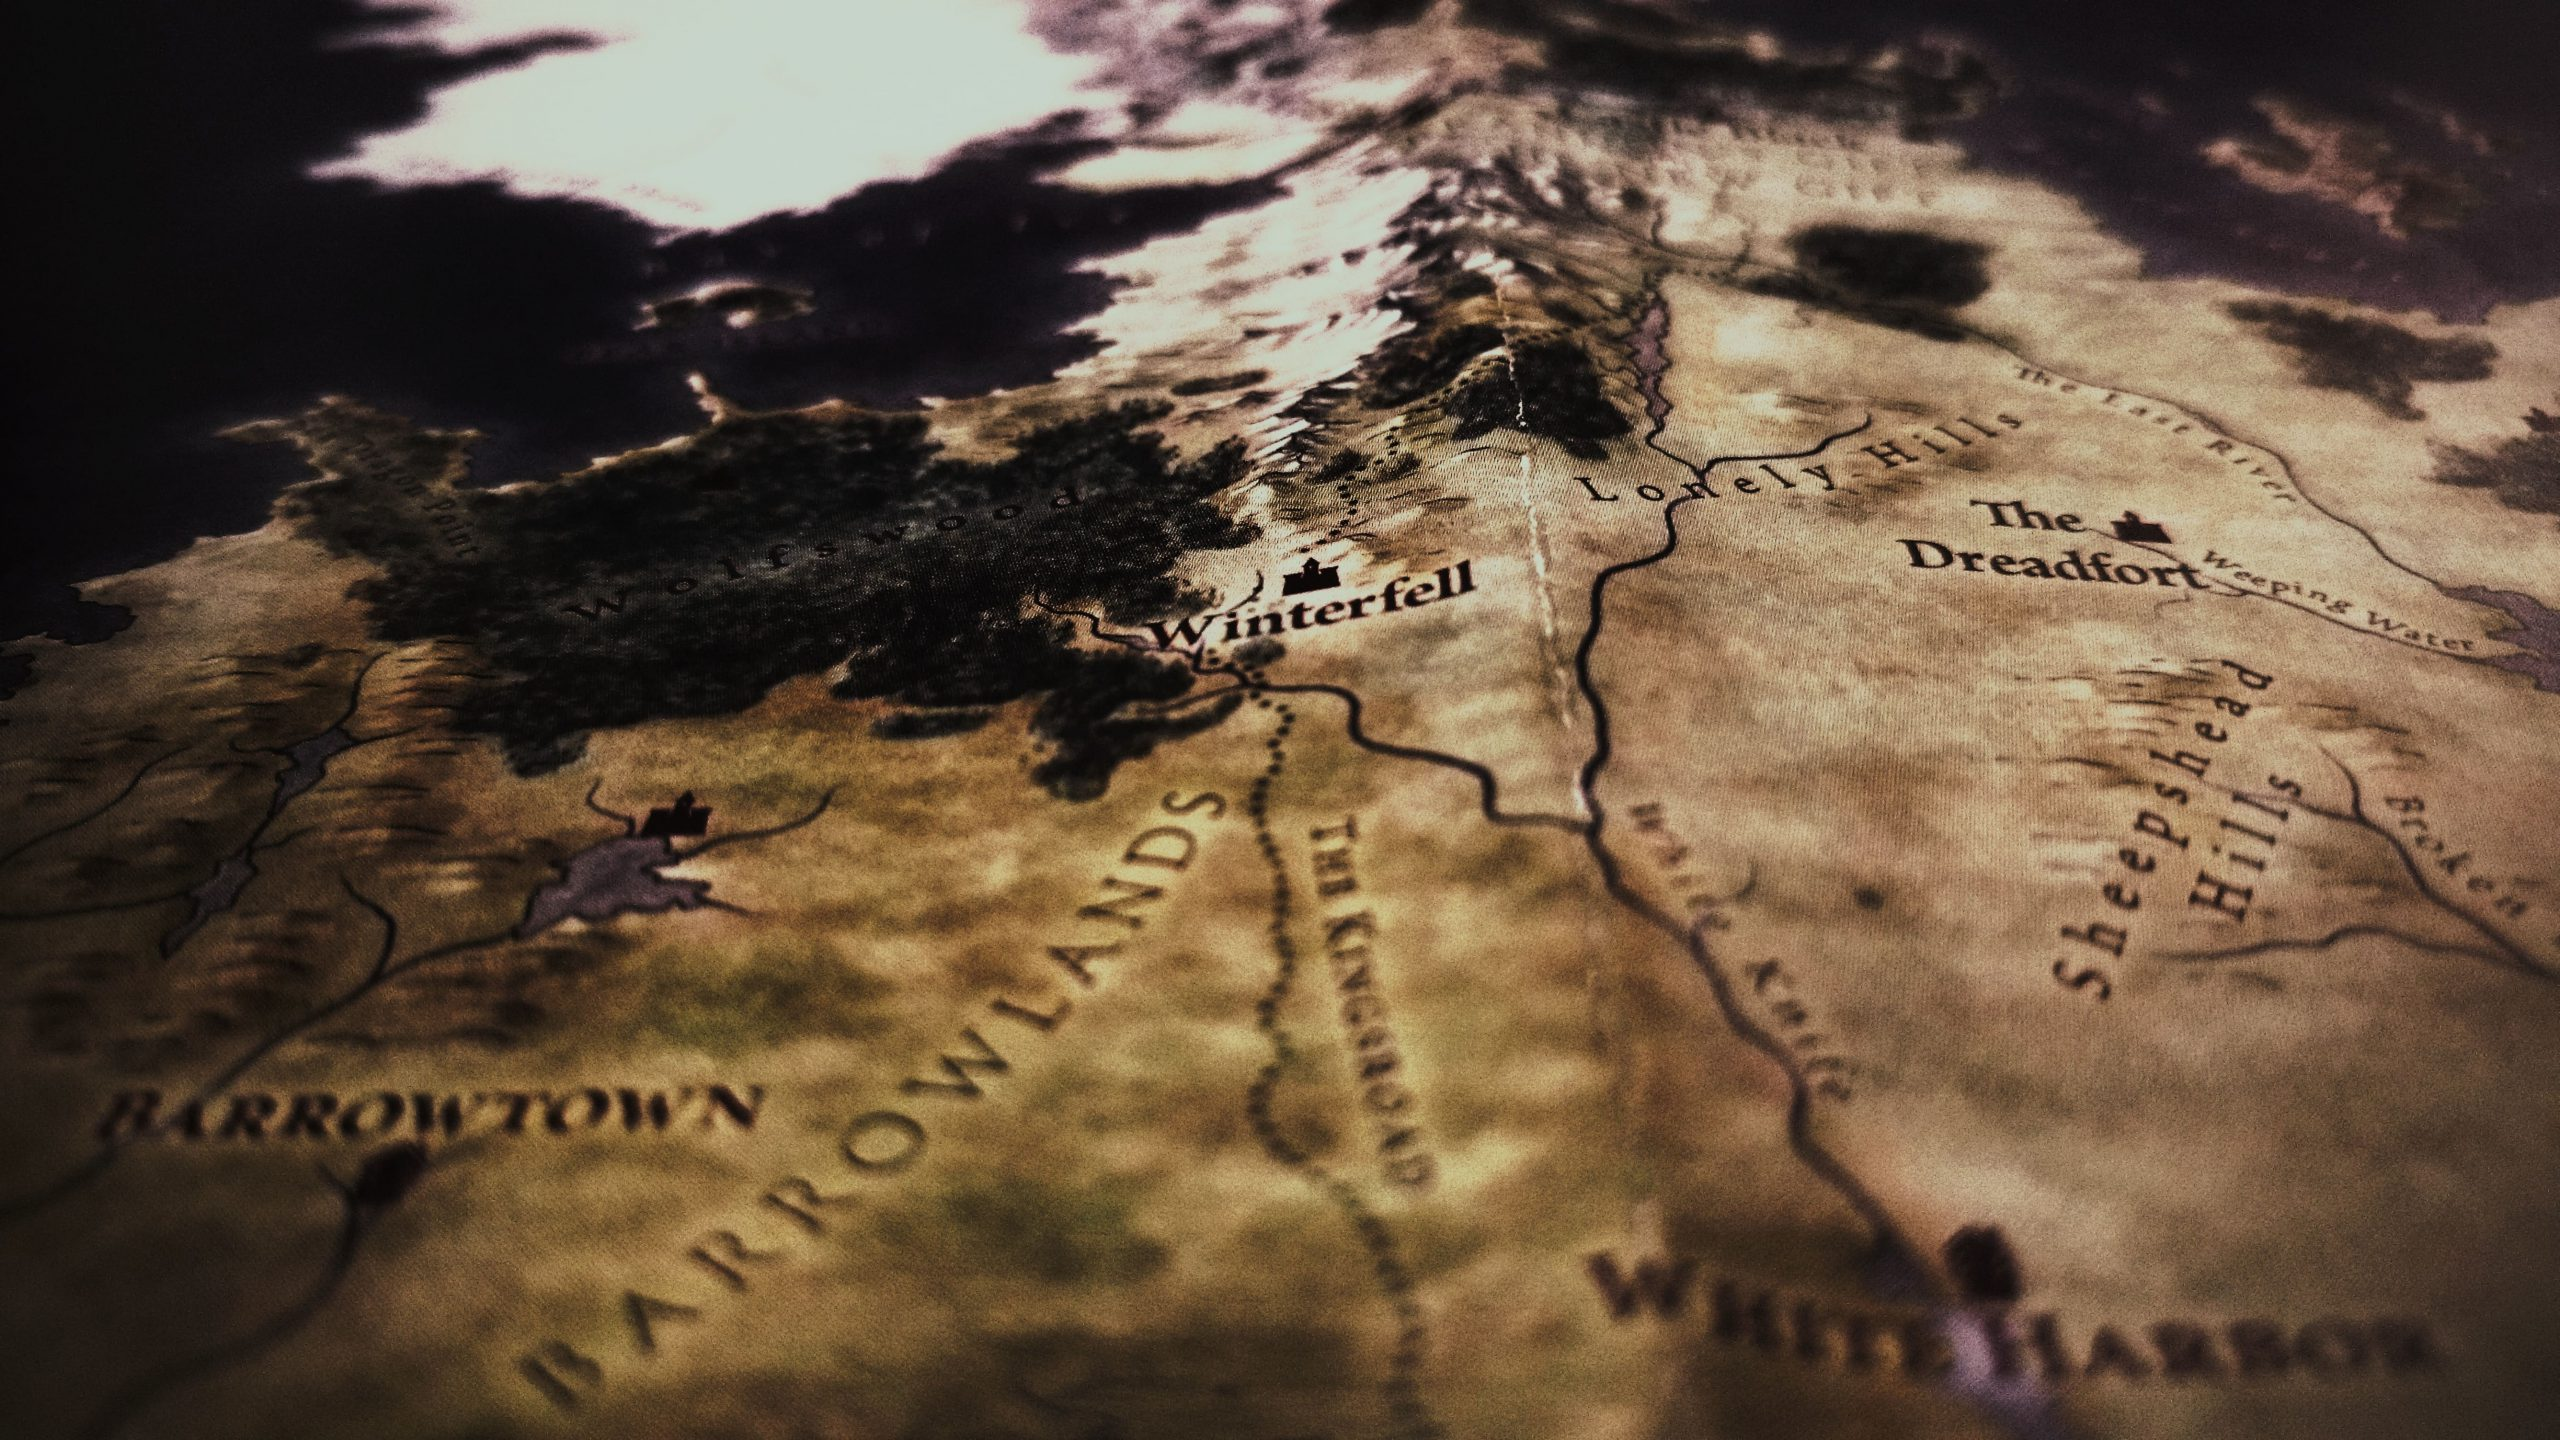 featured photo for how to create your own fictional language. Map of Westeros, fictional land from game of thrones